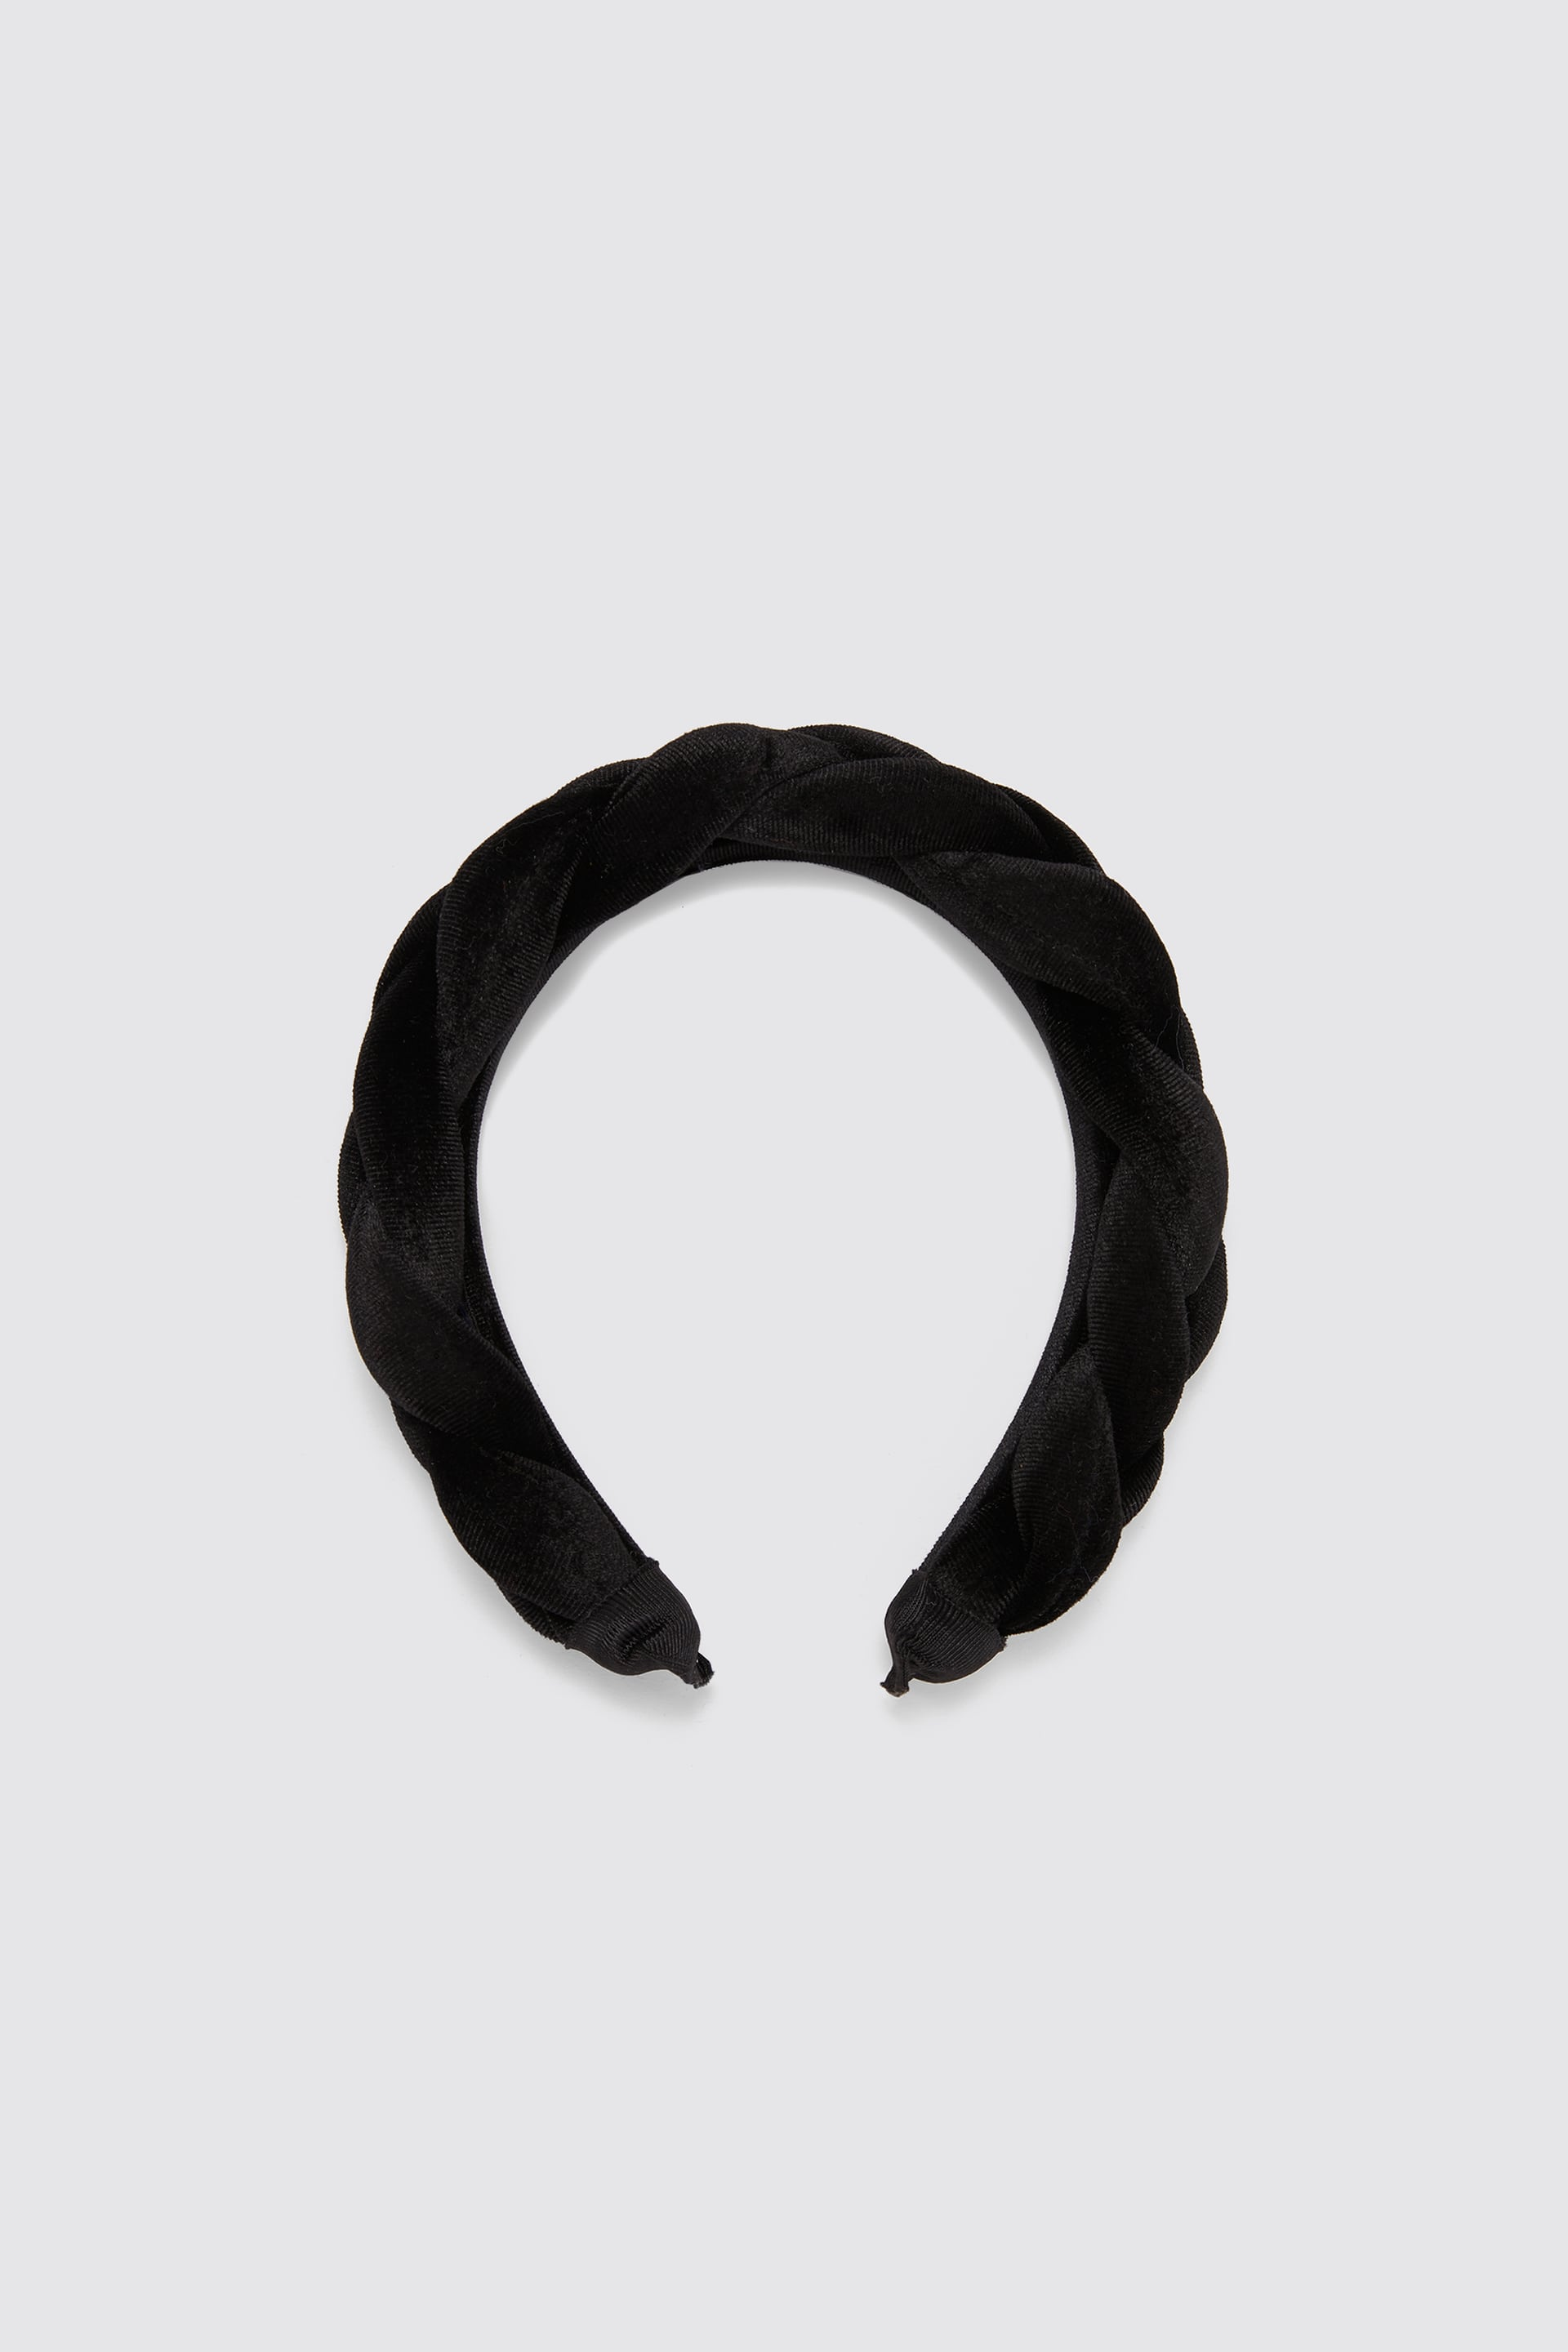 Velvet Woven Headband New Intrf by Zara